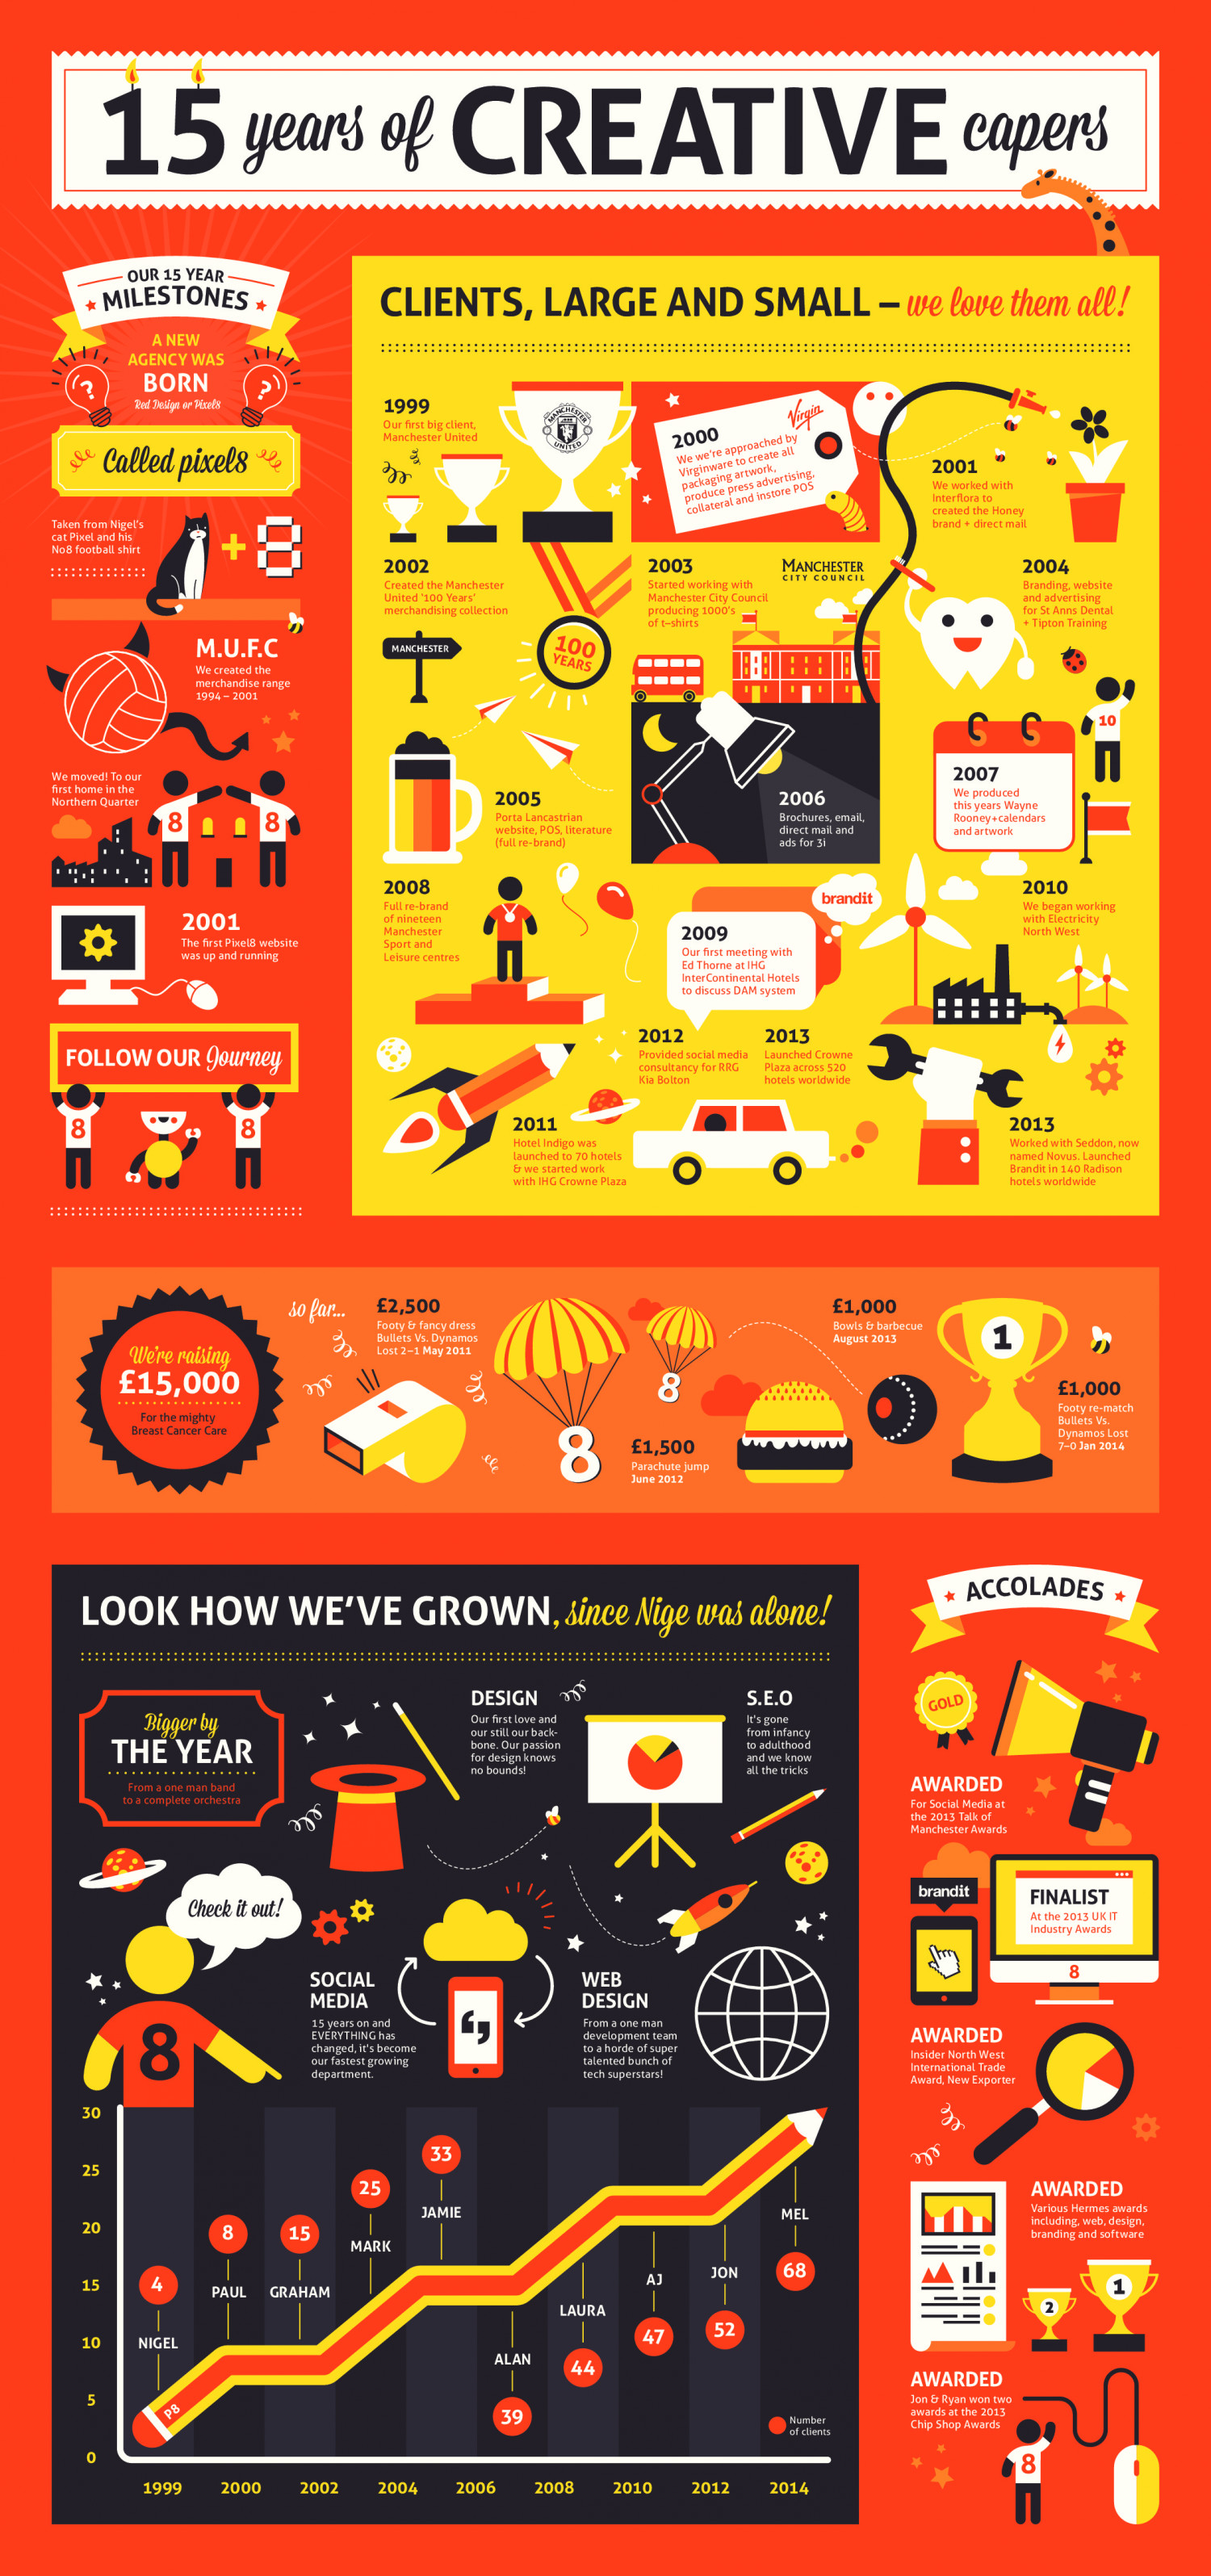 15 Years of Creative Capers Infographic